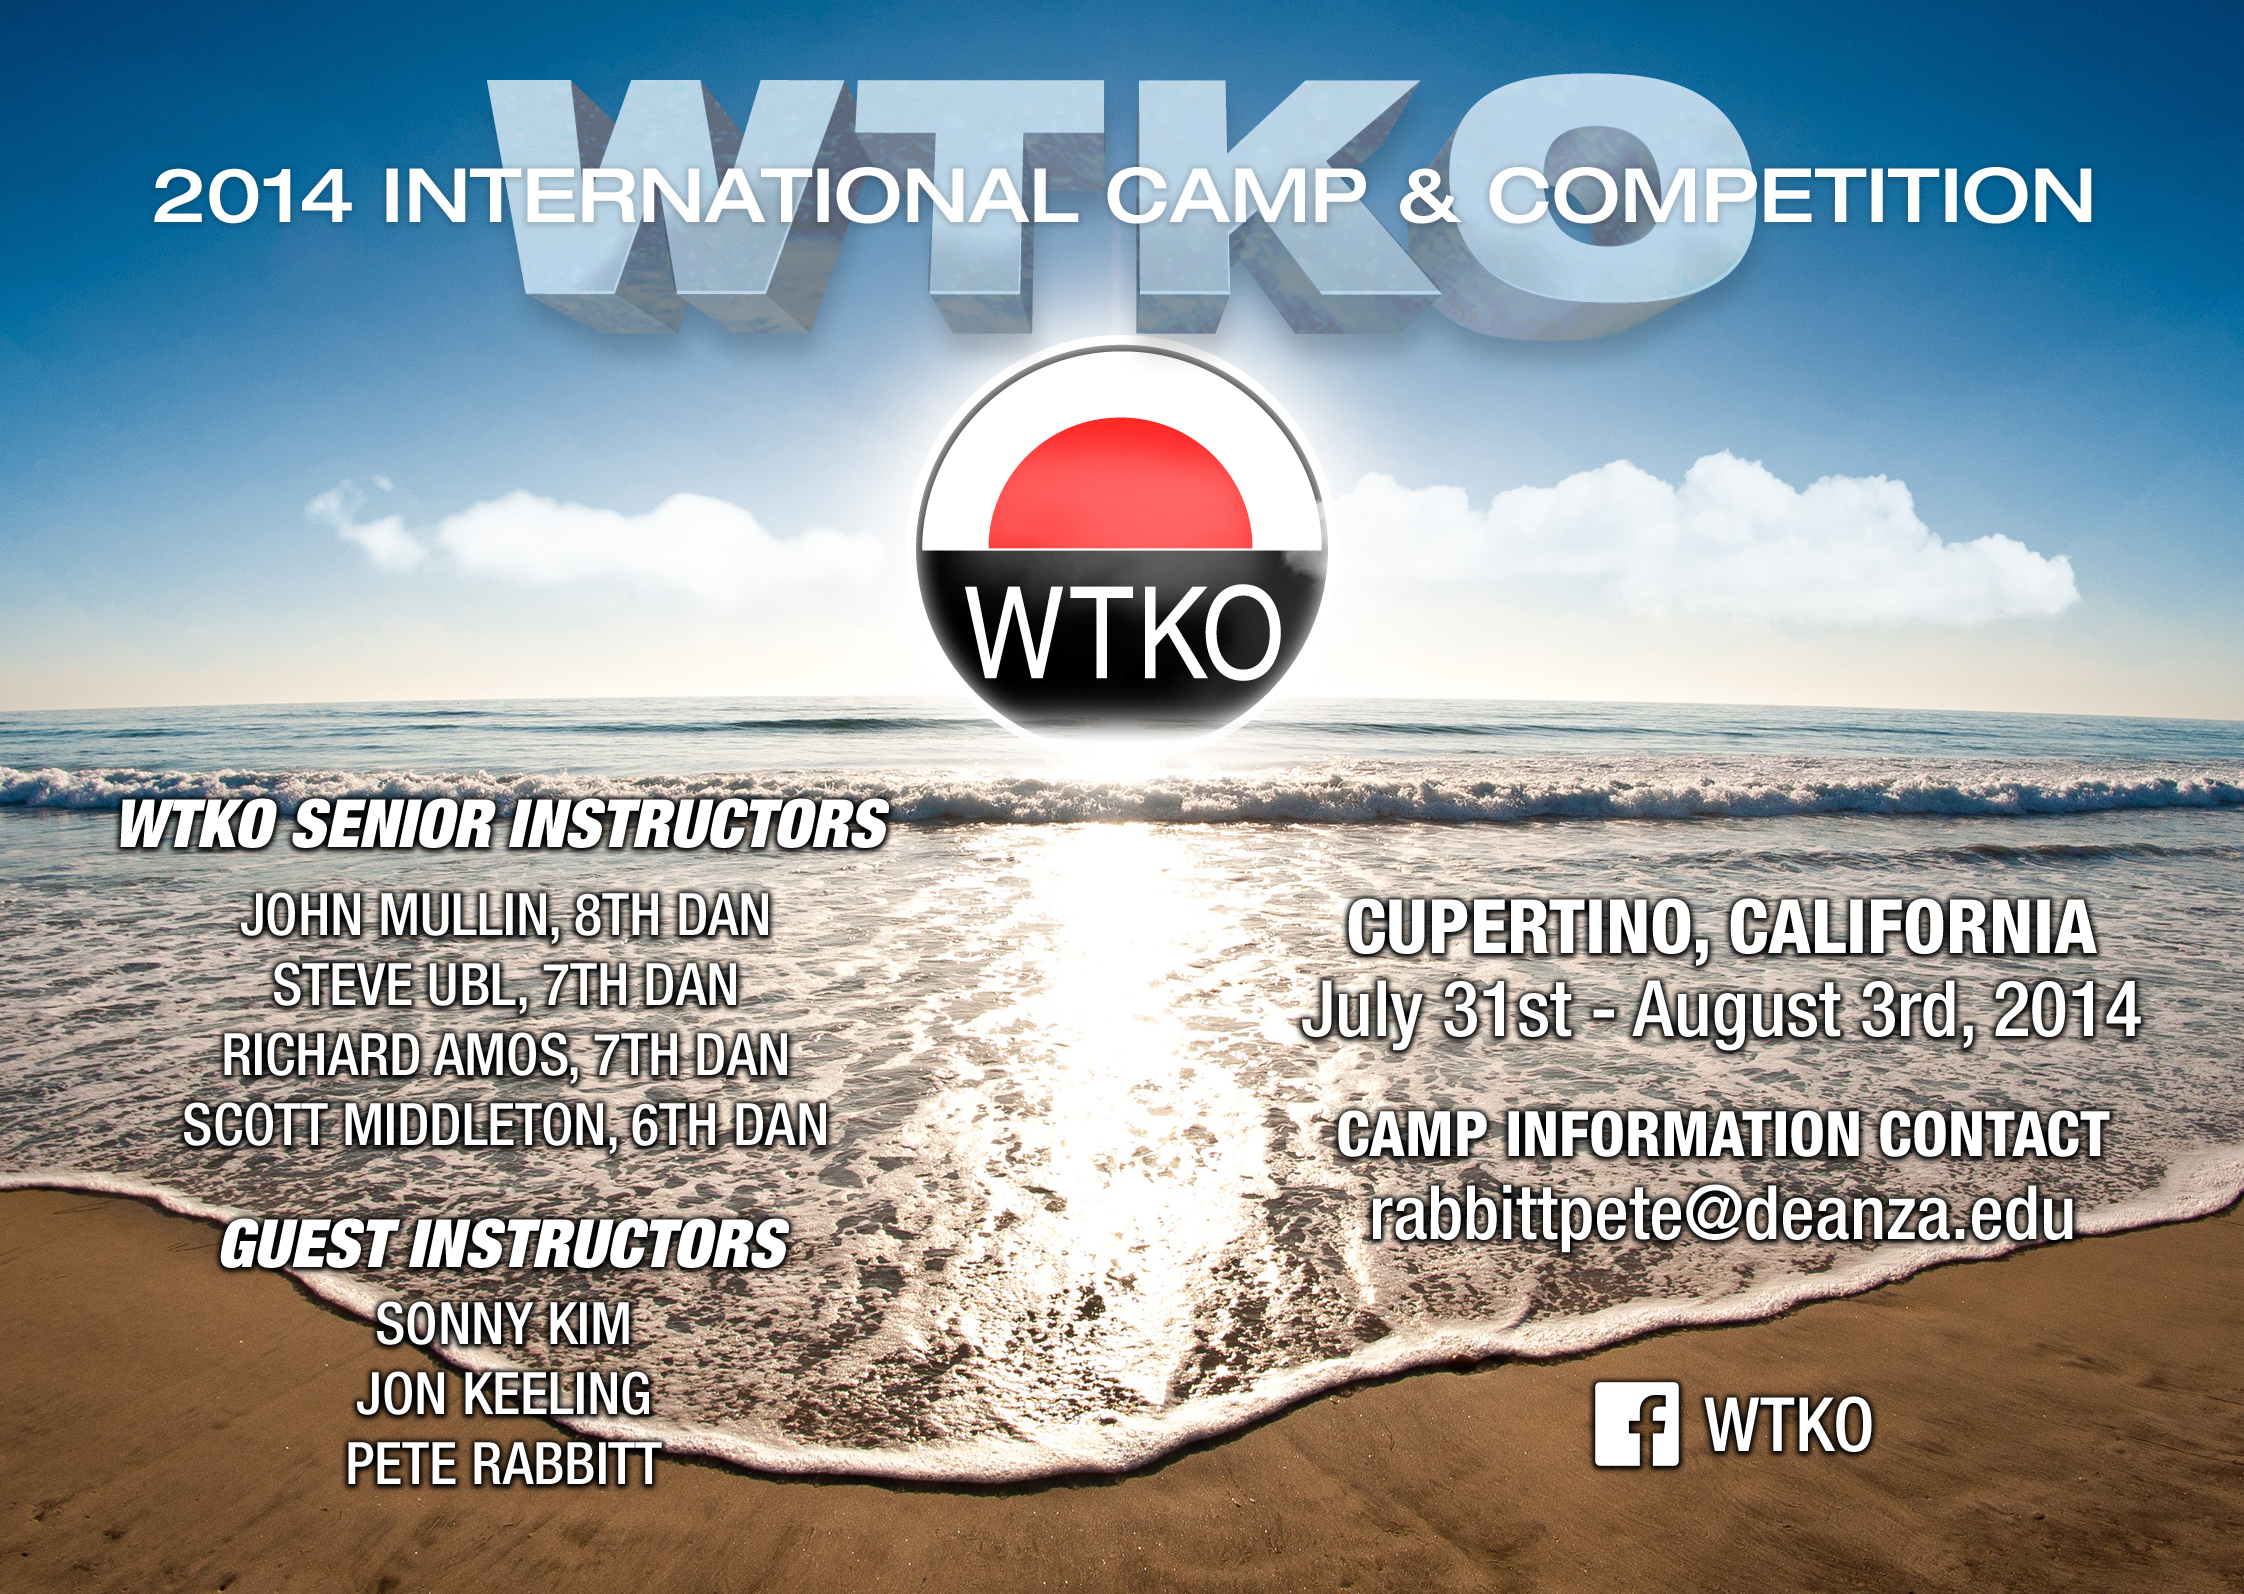 2014 WTKO International Camp & Competition